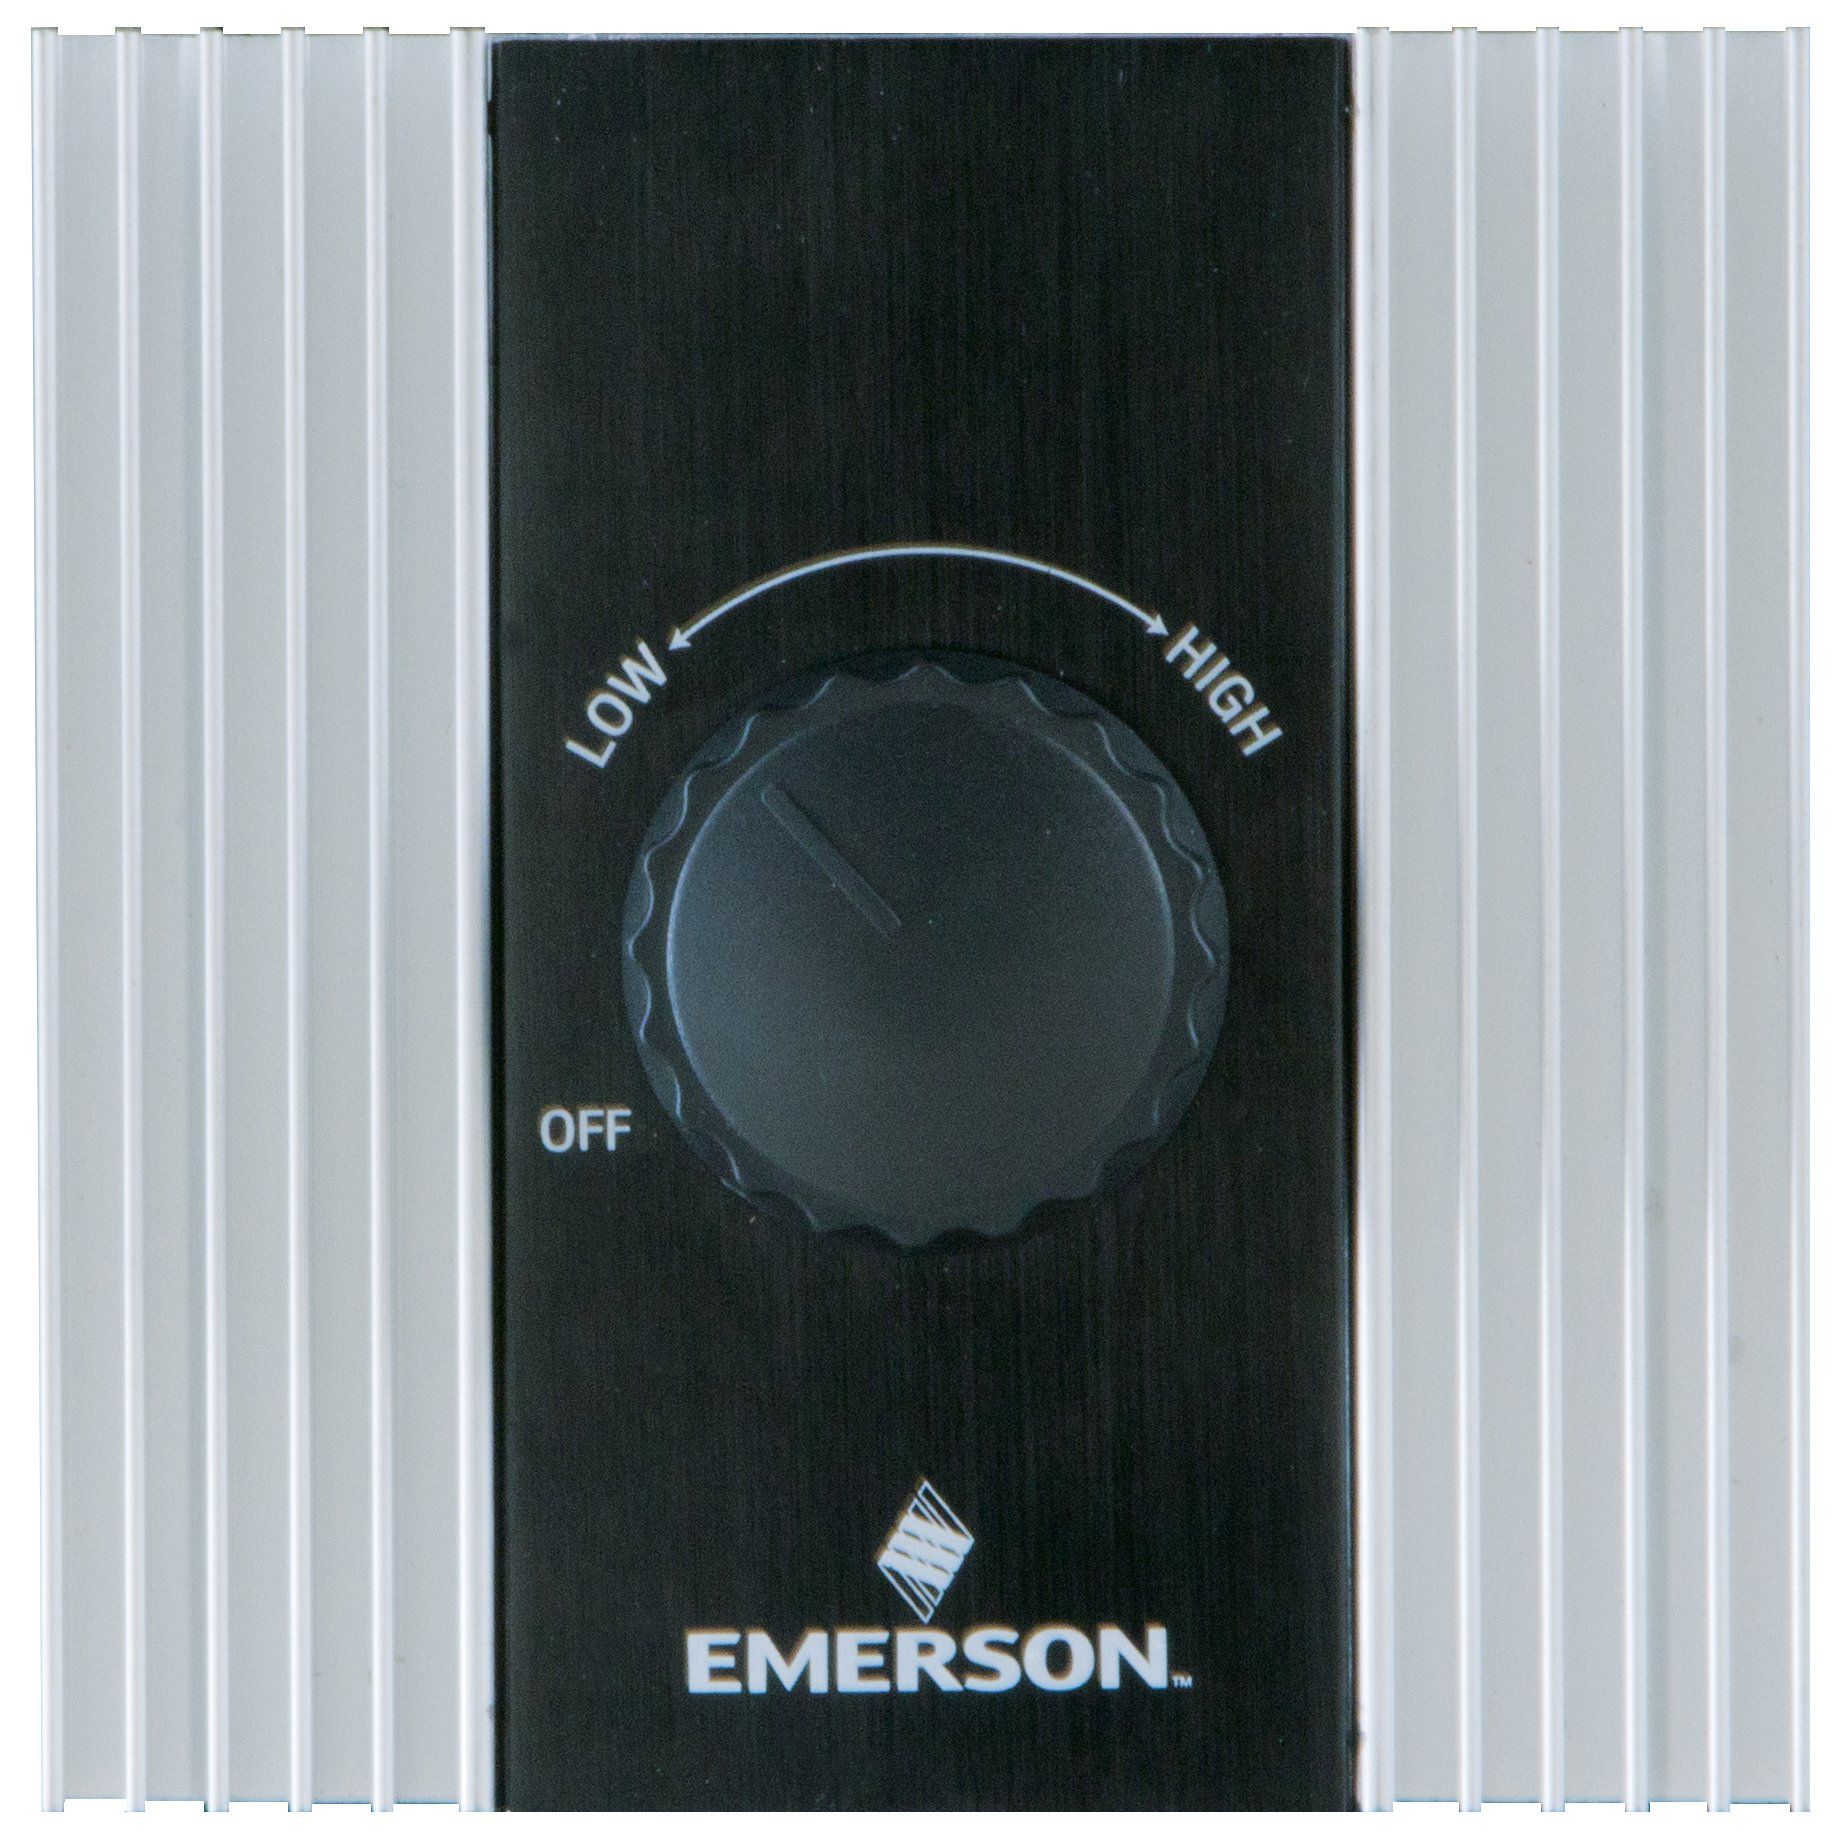 Emerson Ceiling Fans SW82 Infinity 12 Amp Rotary for Ceiling Fans